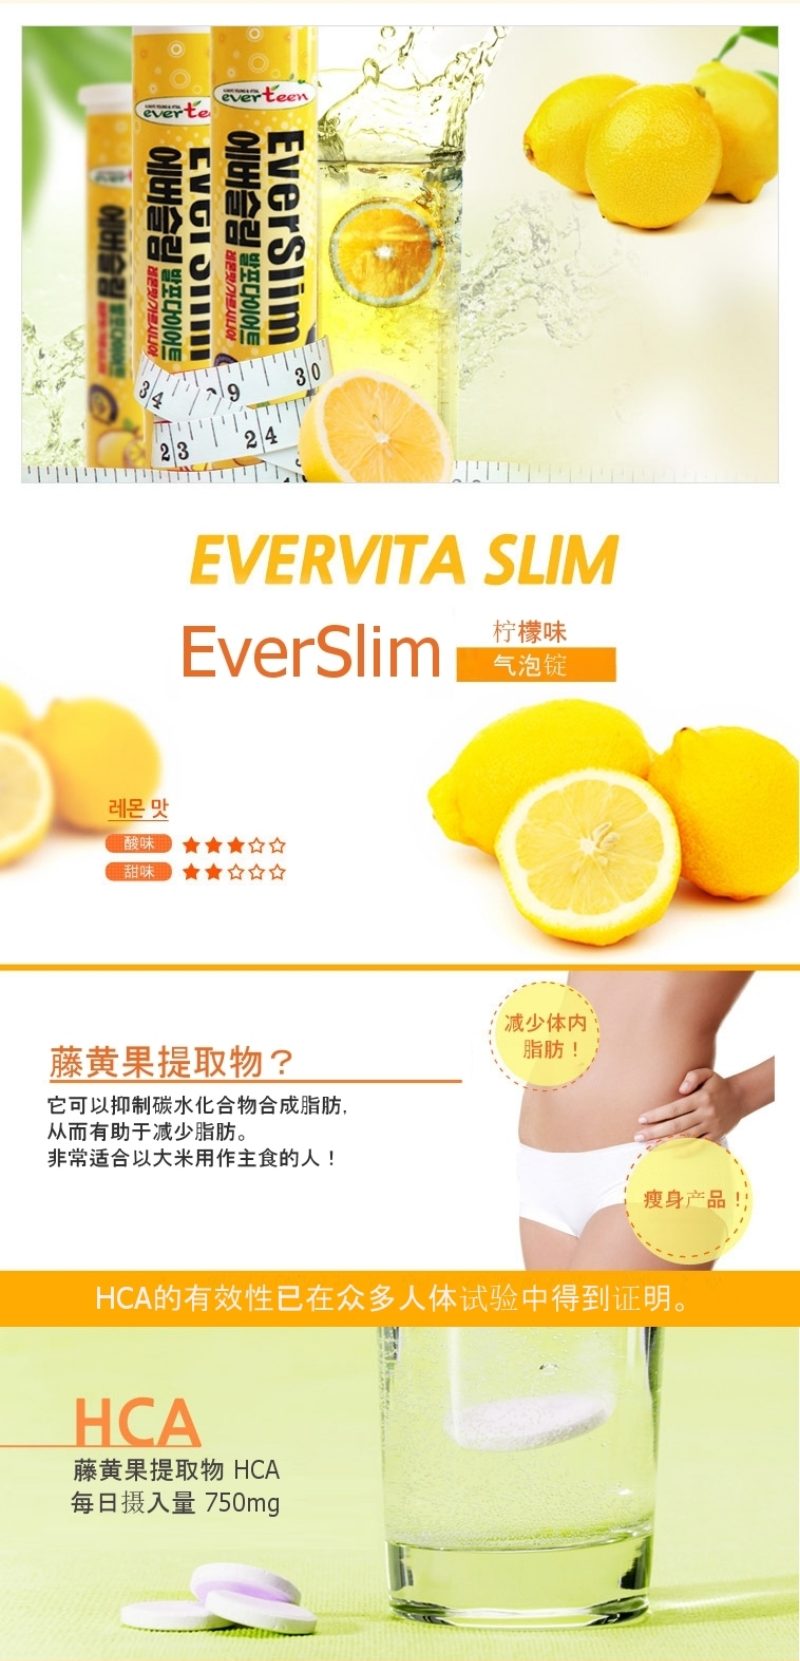 Ever Slim - Lemon D01.jpg